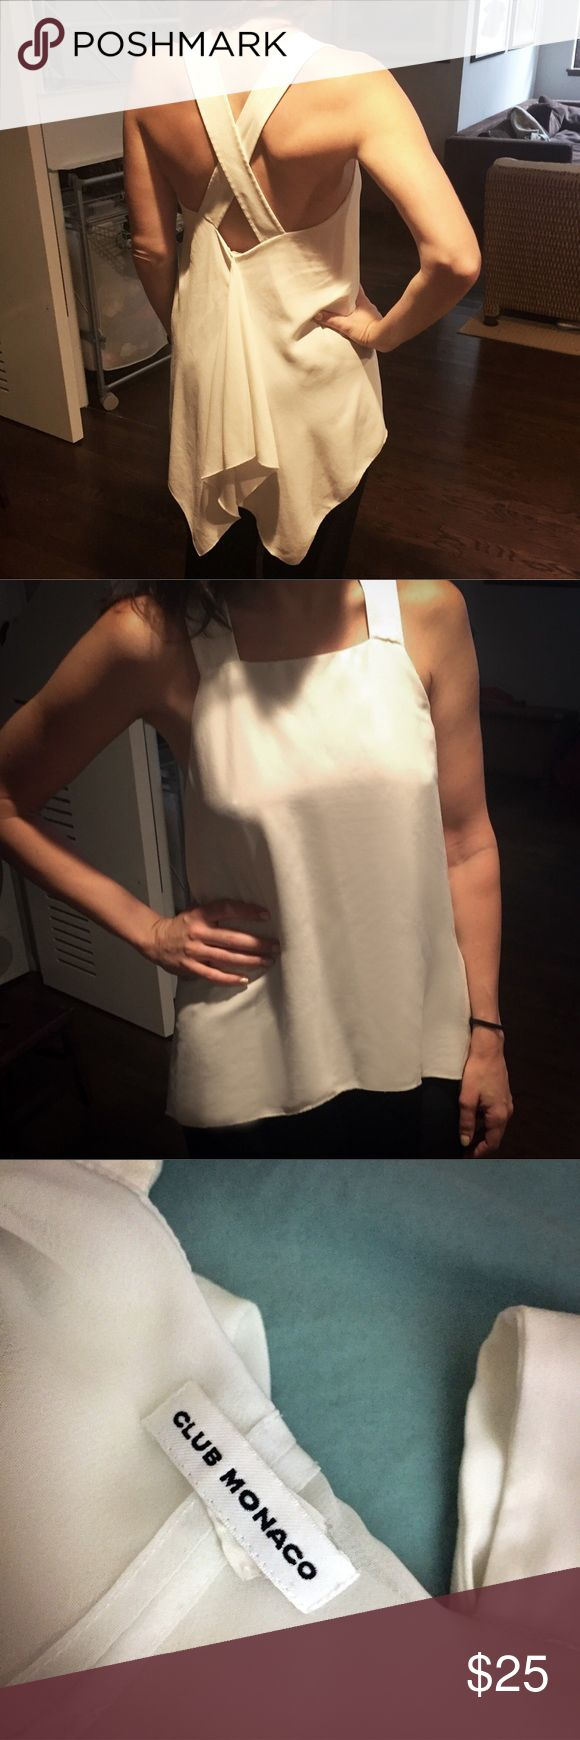 "CLUB MONACO 🎀 Fun Flowey White Blouse Tank 🎀 Longer in the back with a fun gathered ""bow"" look, open shoulders and x-cross back! Great with a short skirt, even jeans. 🌸 Gently used but great condition, no noticeable flaws. Very fem feeling, with a slightly dramatic back! Size XS though I previously cut the tags - it's a very flowey, forgiving fit. Club Monaco Tops Blouses"